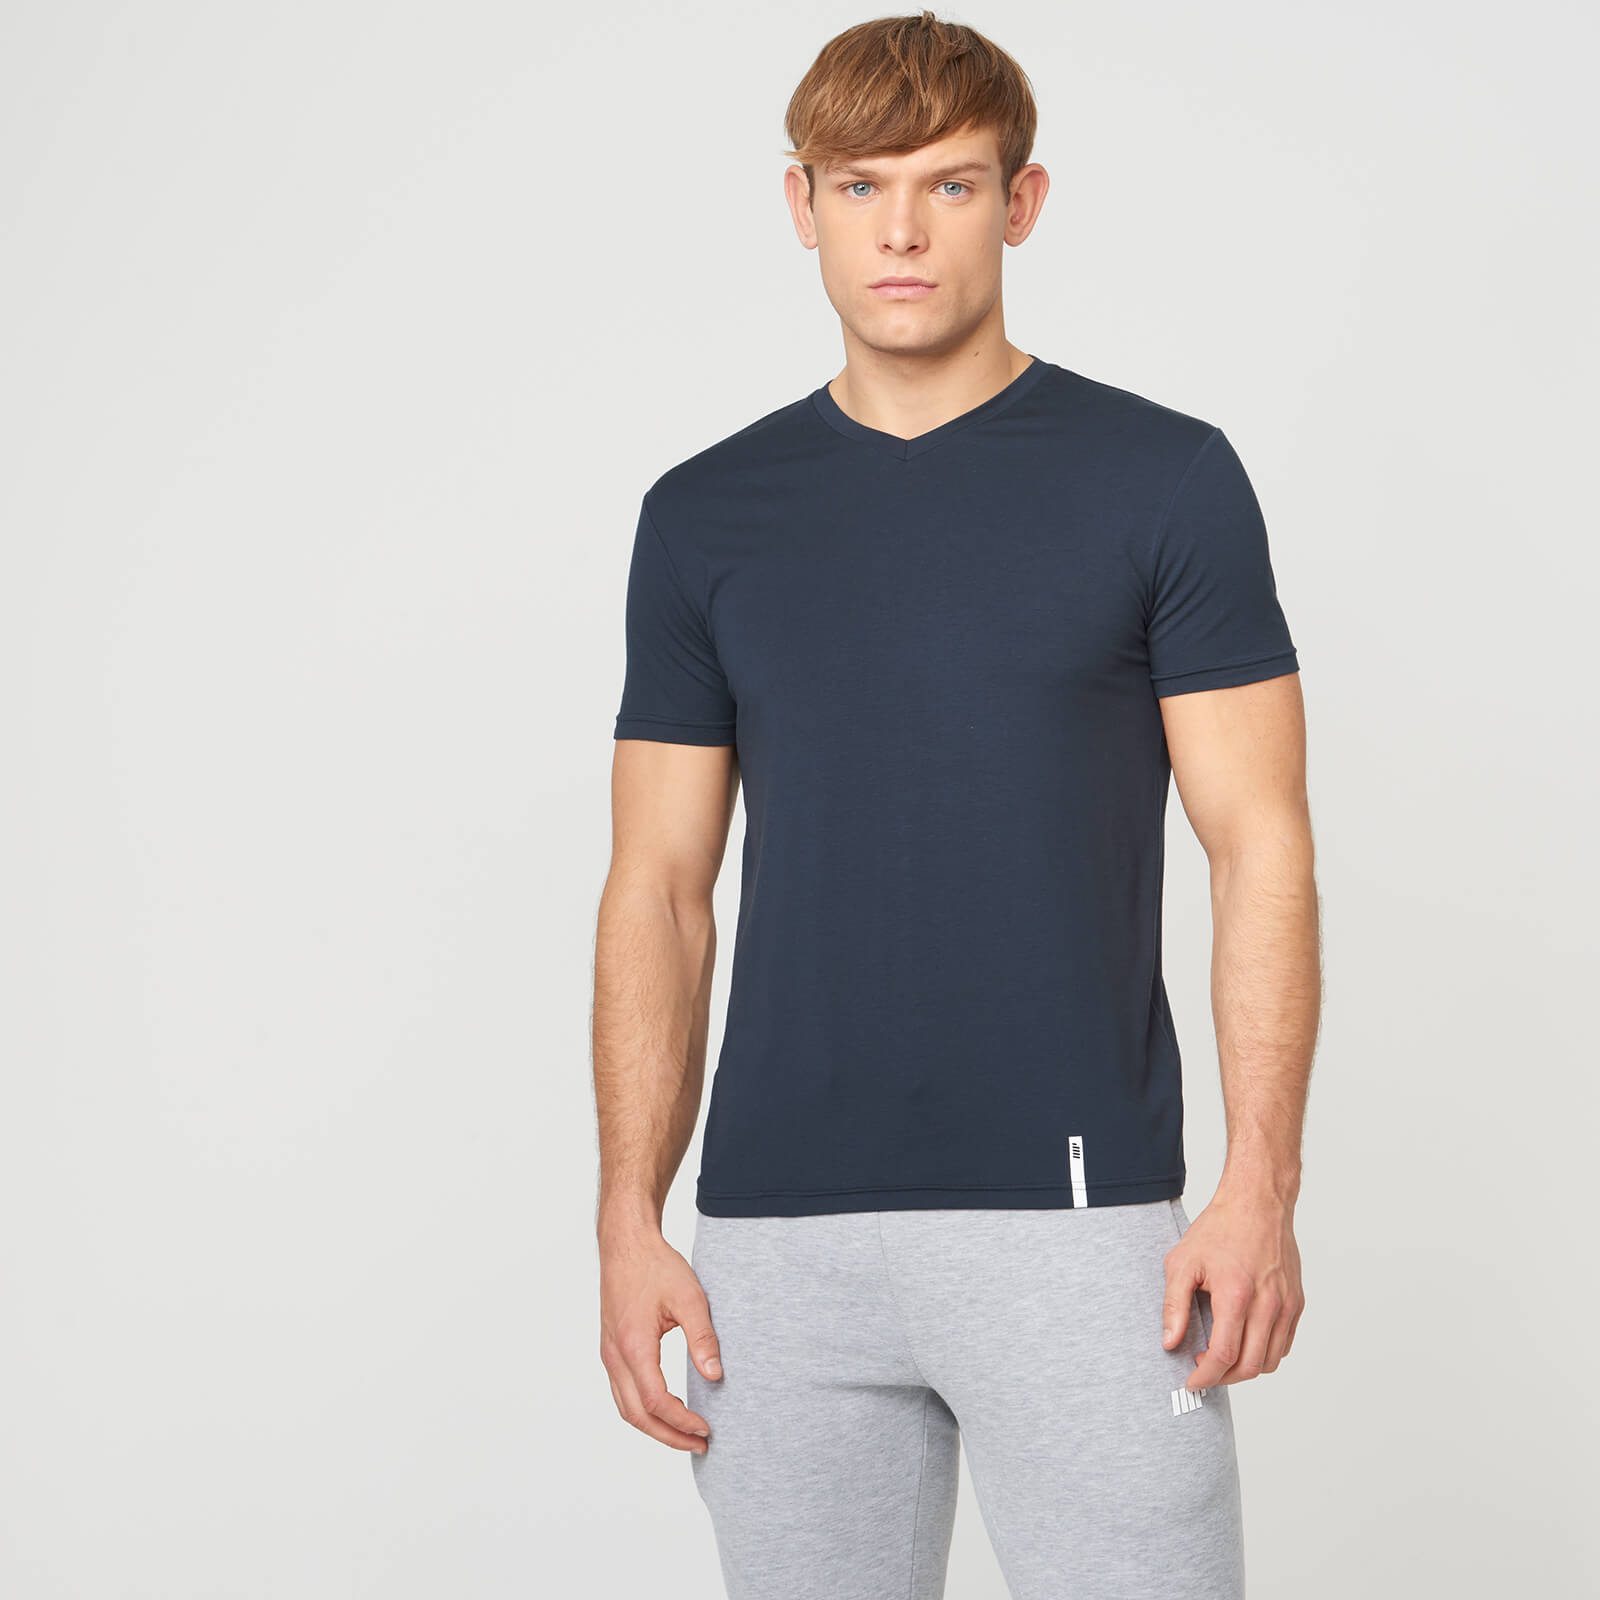 Myprotein Luxe Classic V-Neck T-Shirt